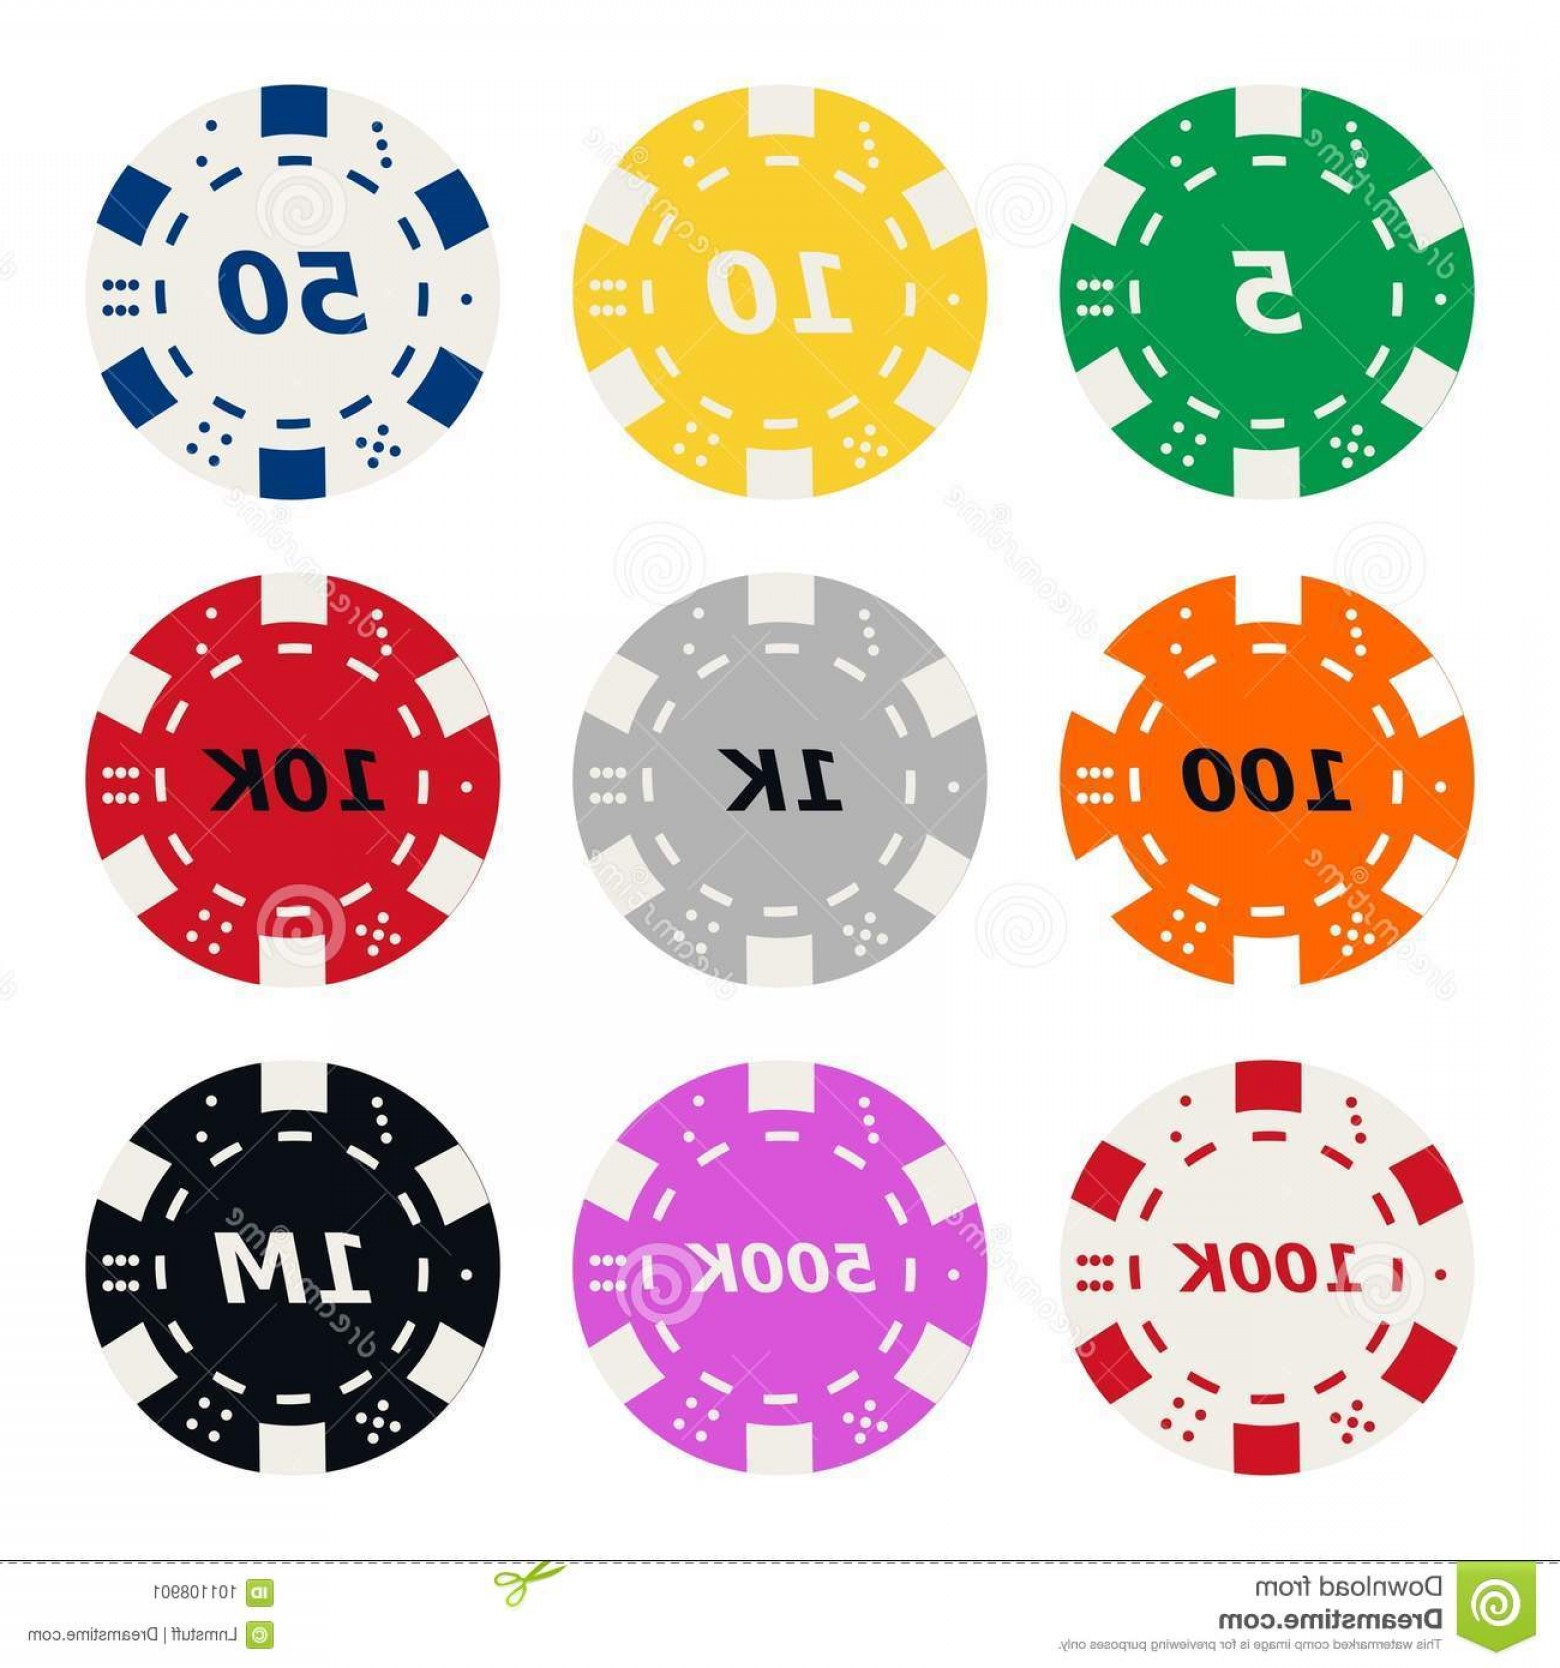 Editable Vector Poker Chips: Poker Chips High Quality Vector Collection Different Colors Value Making Seamless Pattern Full Editable Eps File Image